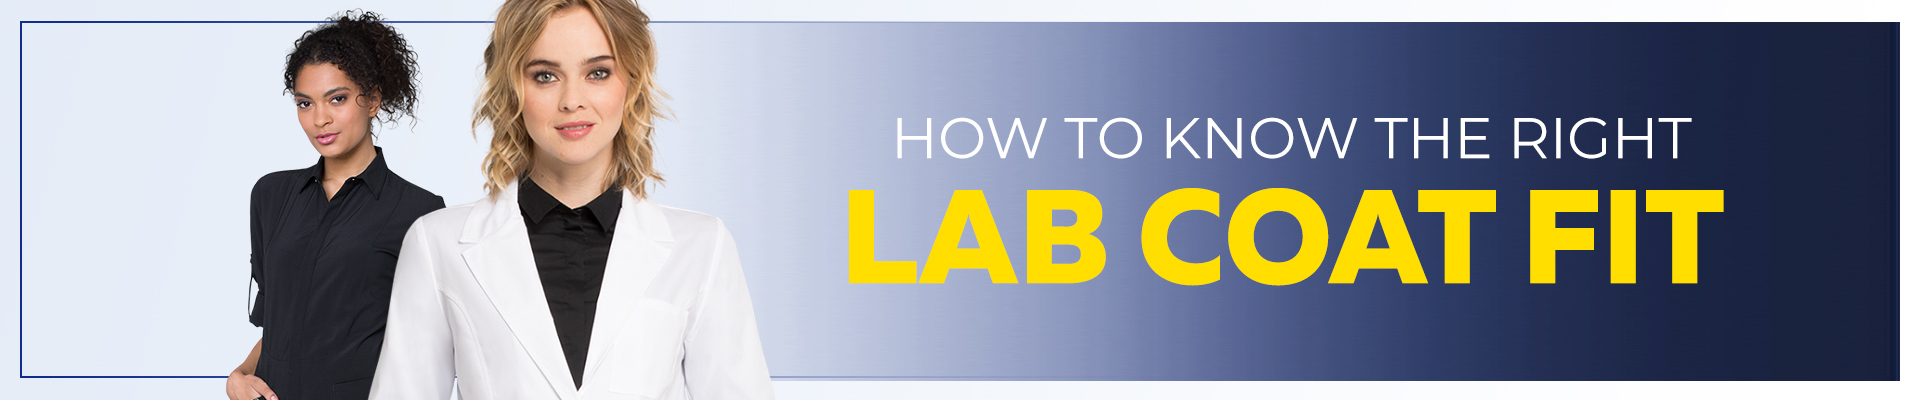 How to Know the Right Lab Coat Fit